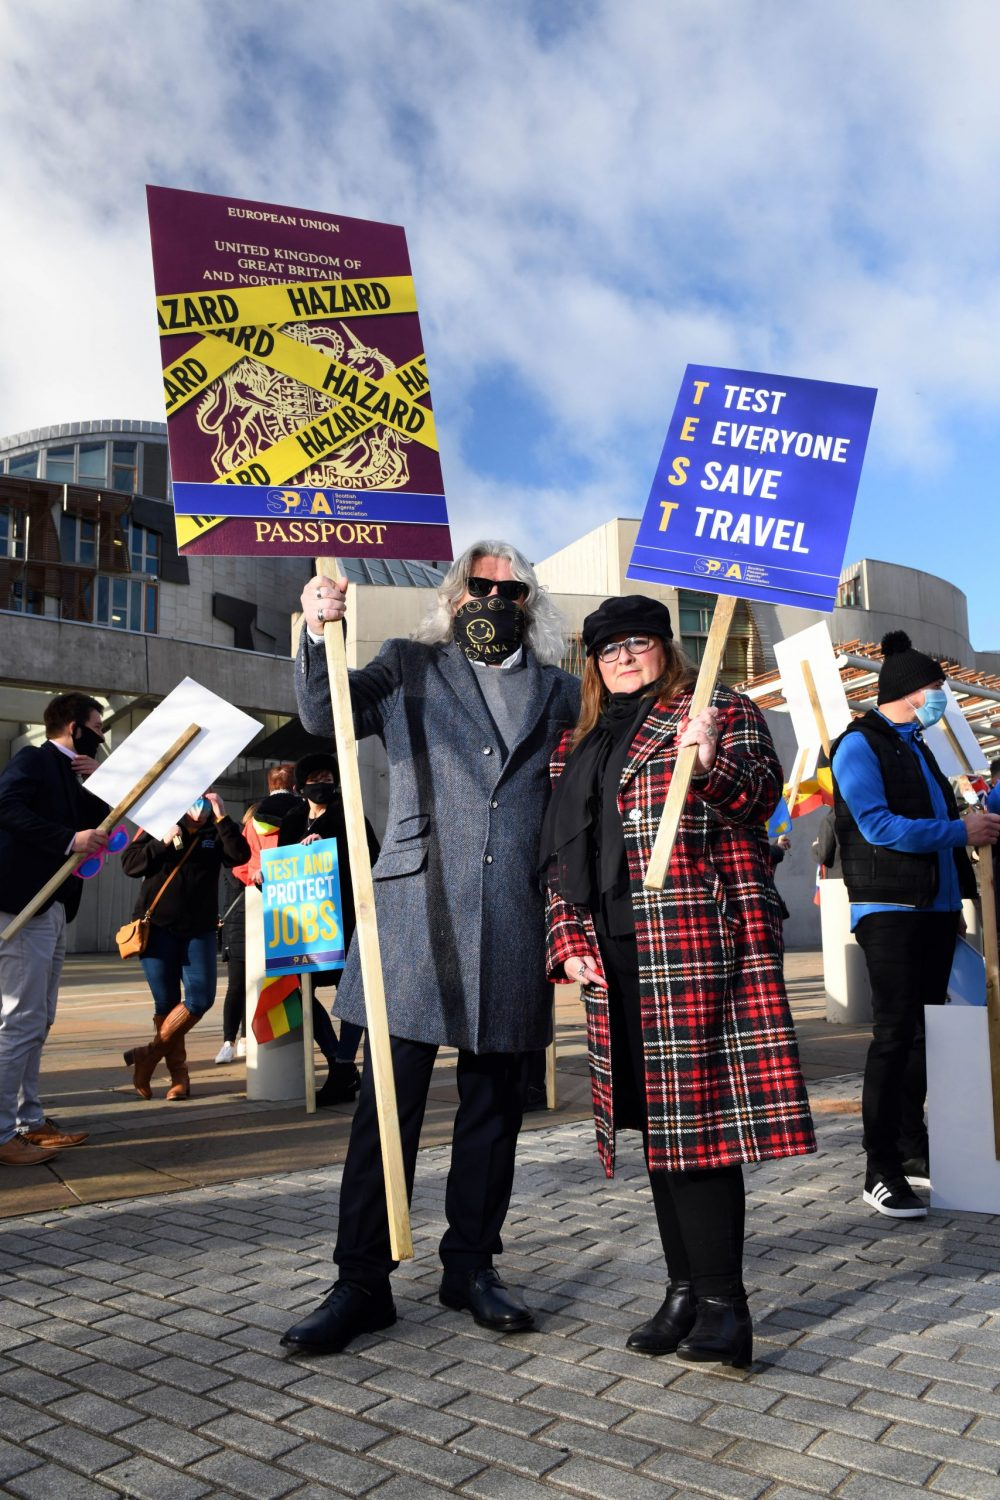 Travel support protests outside Holyrood - Business News Scotland